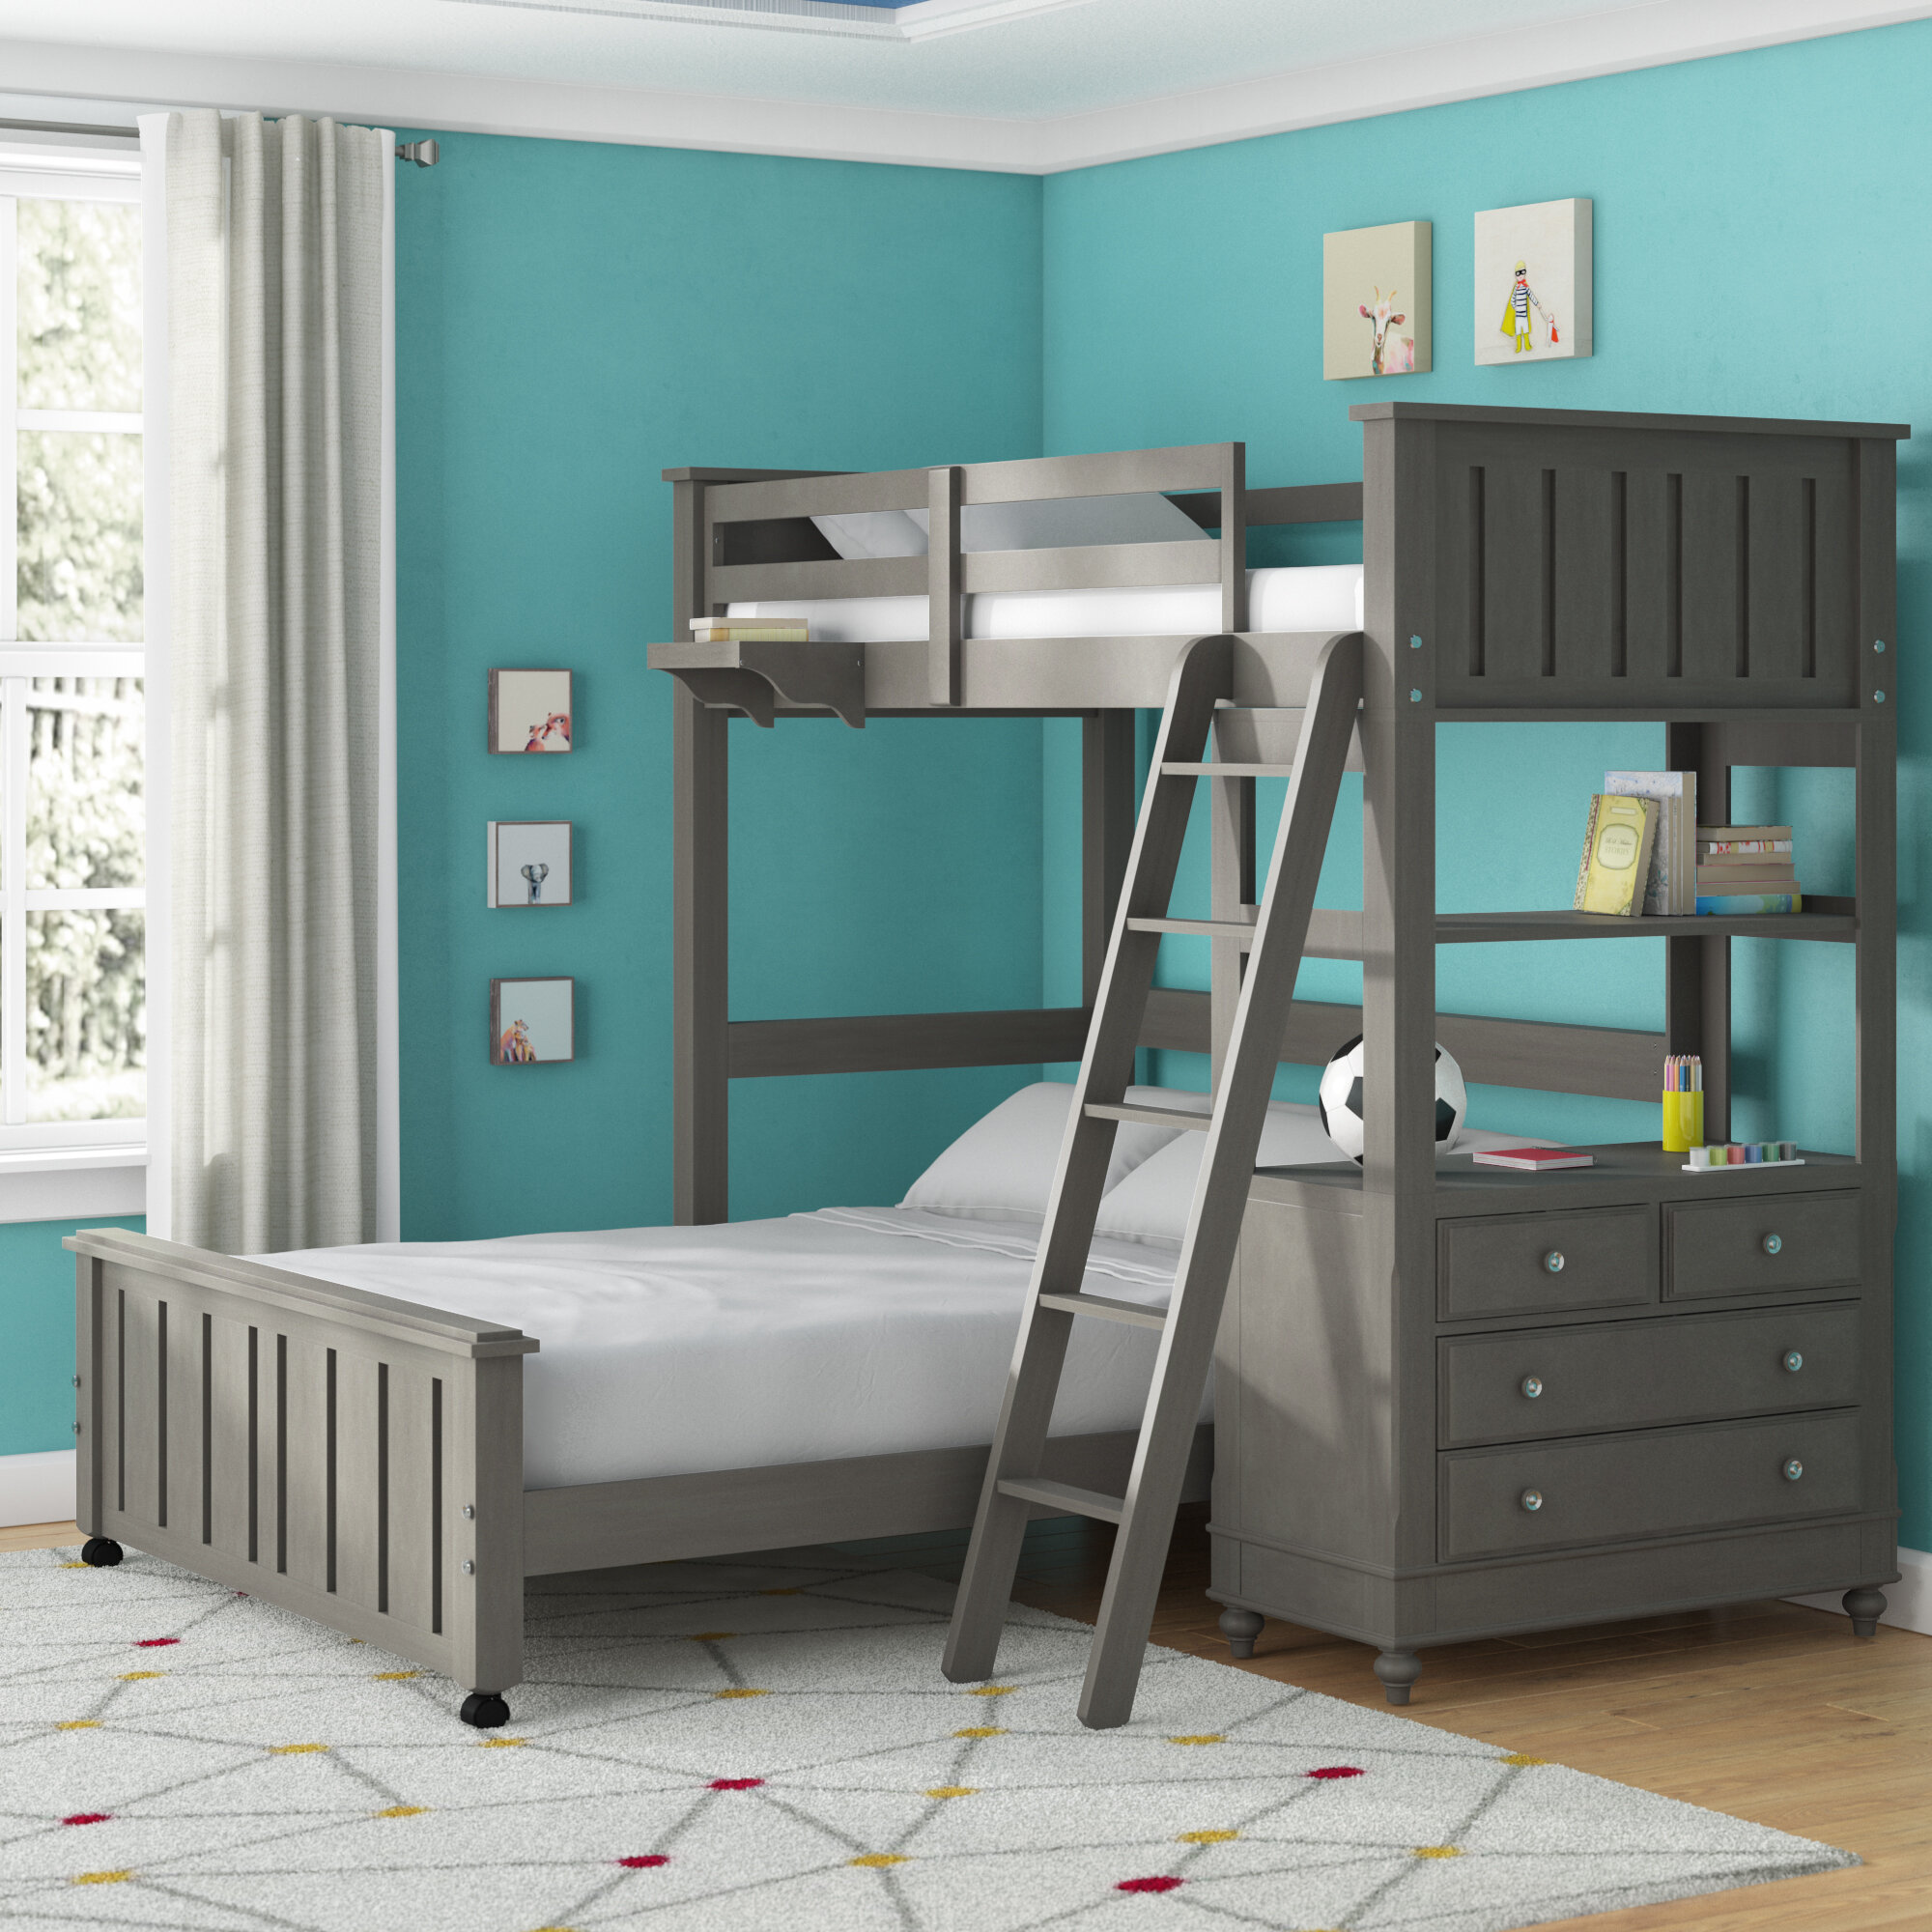 Etonnant Weatherspoon Twin Loft With Full Size Lower Bed